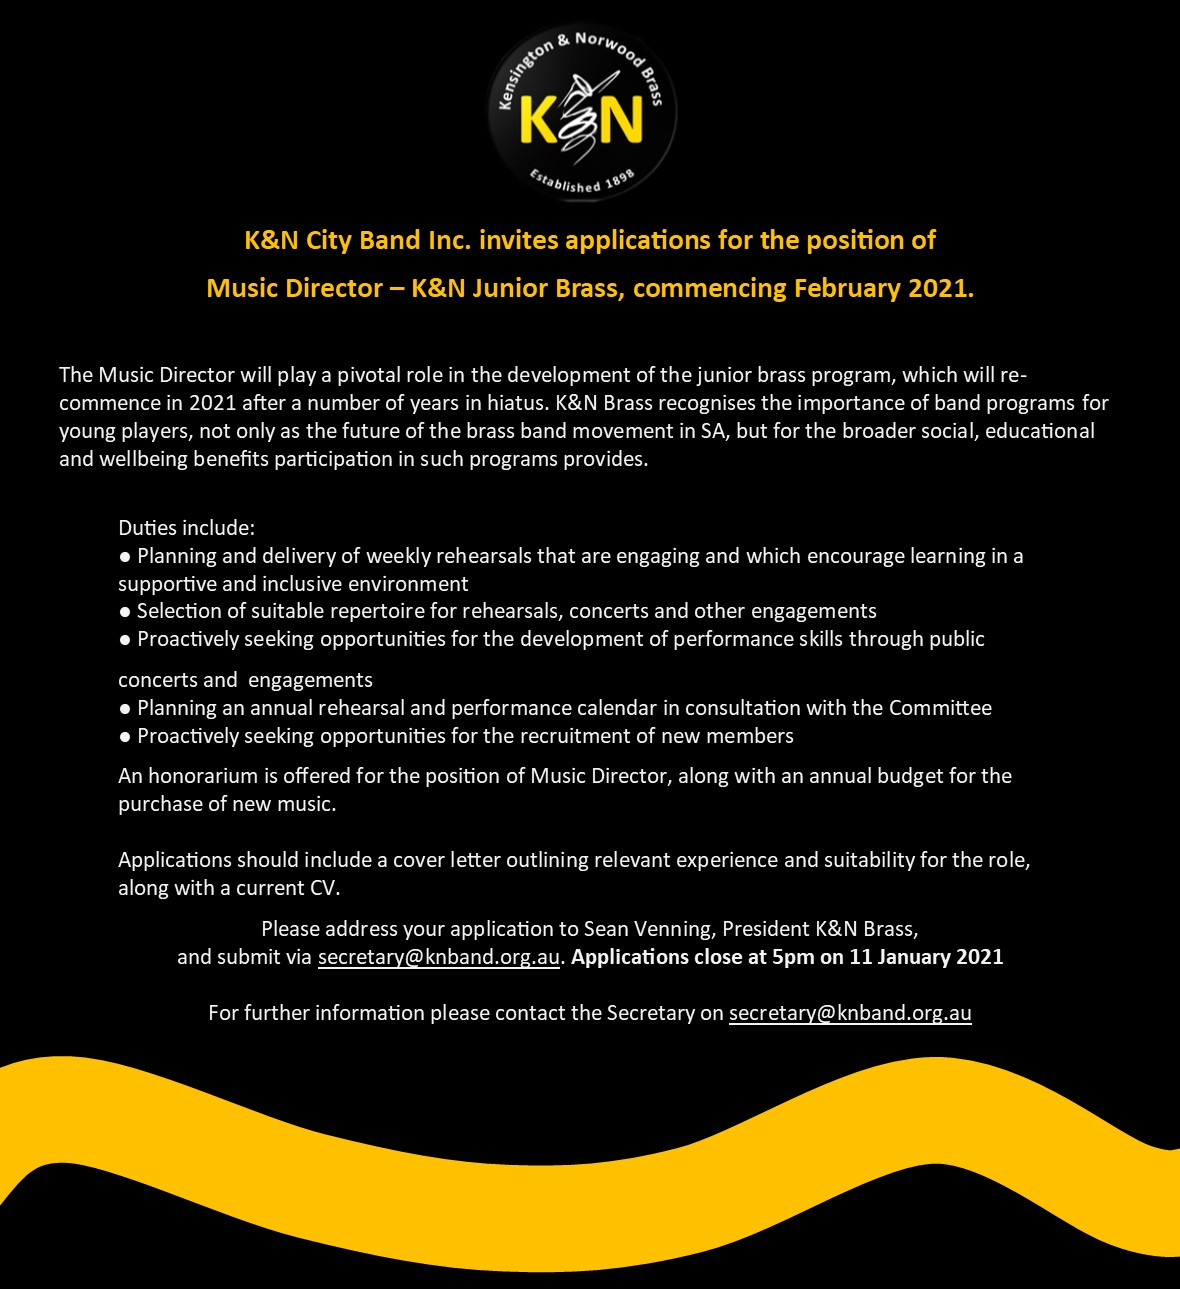 K&N Youth Brass 2021 - Musical Director position available